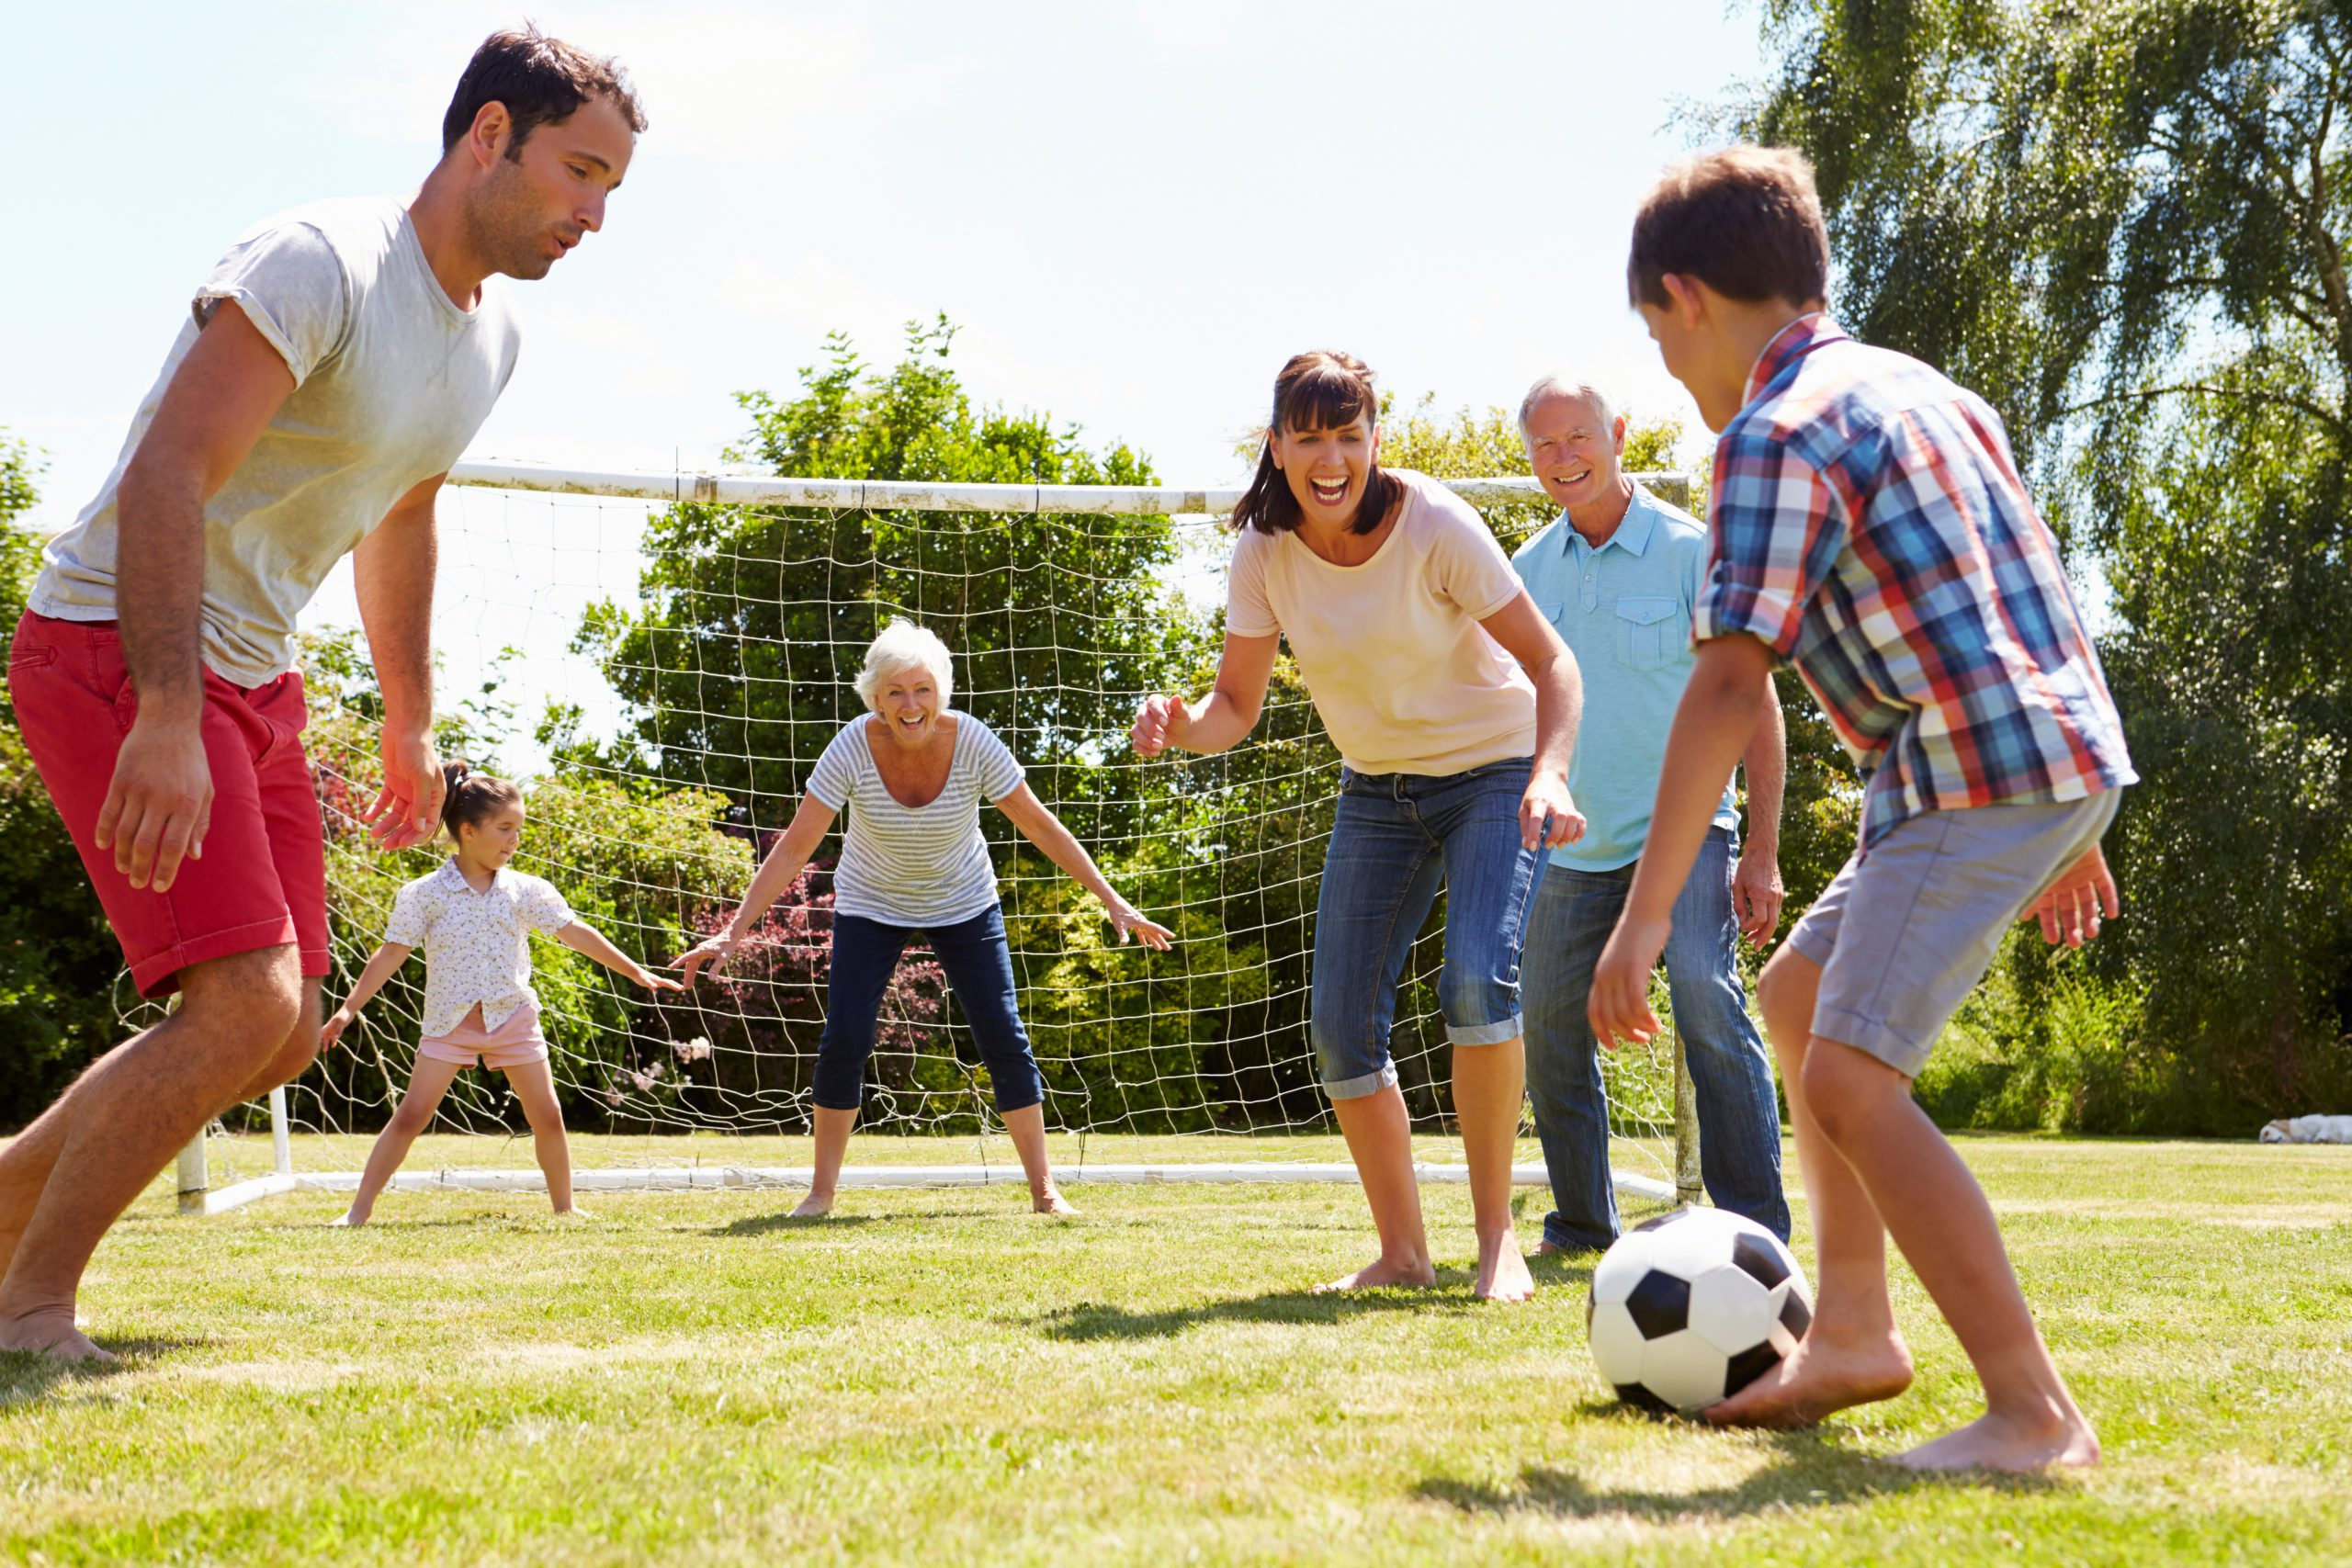 5 Powerful Family Activities for All Generations